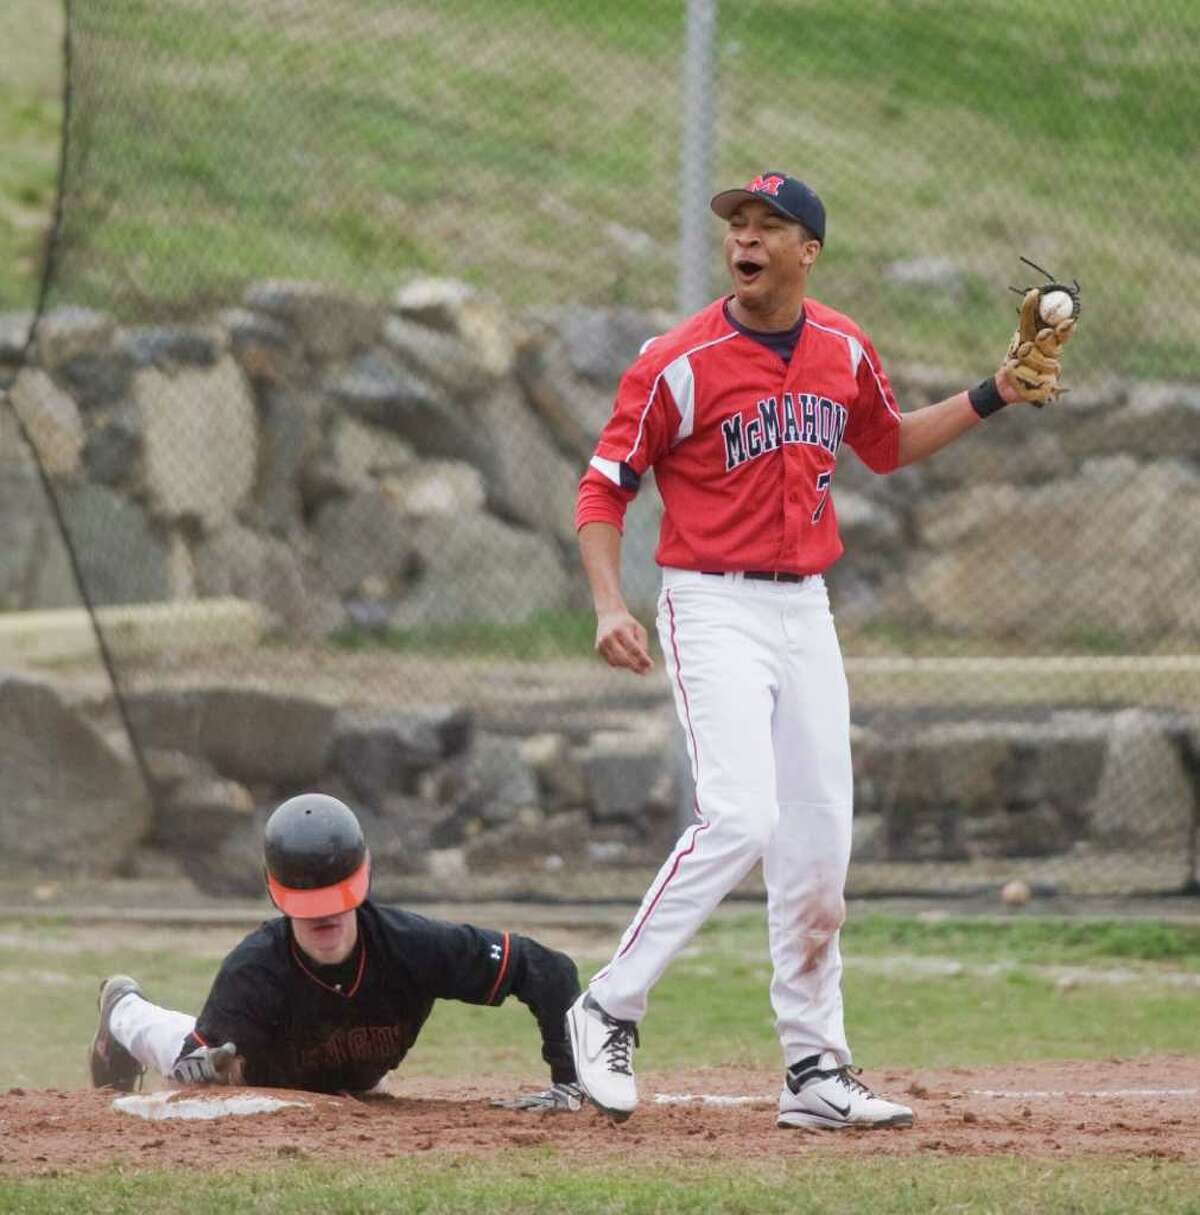 McMahon's Ronnie Sherman reacts to the call as Stamford High's Jeff Cooper beats the tag at third in baseball action at Stamford, Conn. on Friday April 8, 2011.